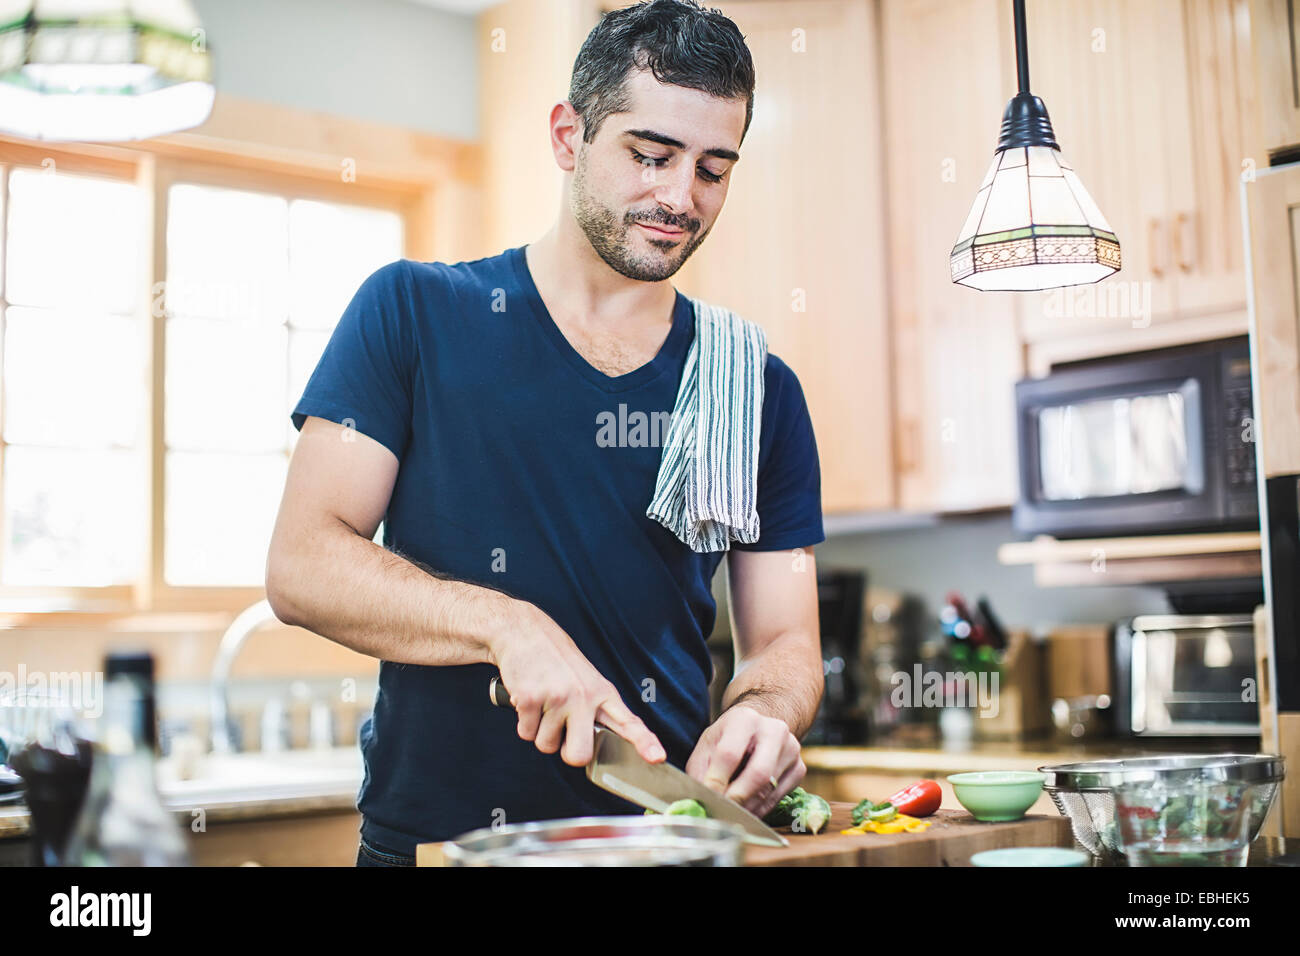 Man preparing food in kitchen - Stock Image